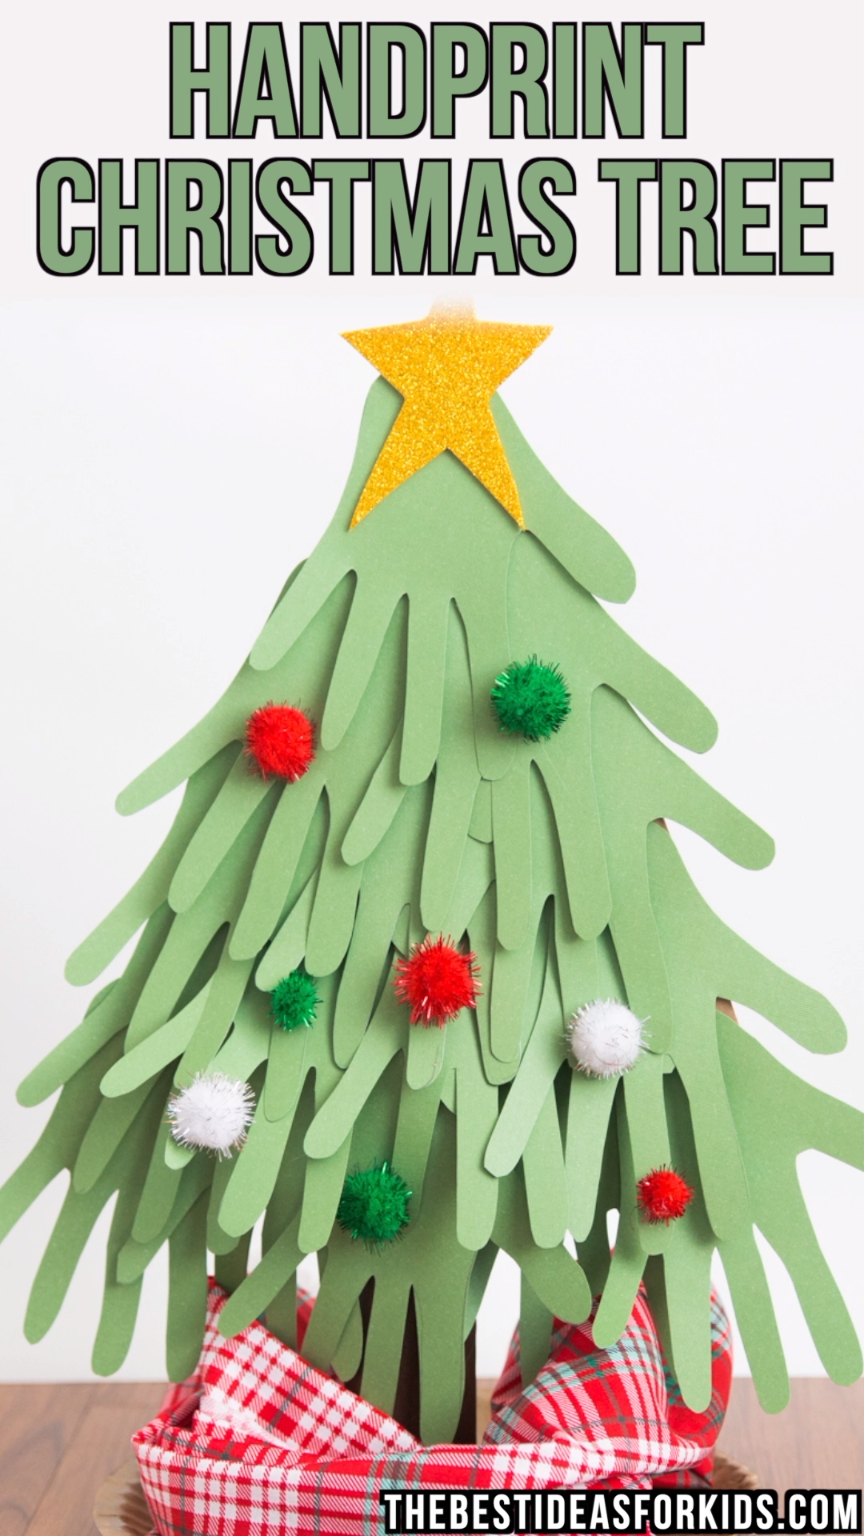 HANDPRINT CHRISTMAS TREE - this handprint christmas tree is so cute to make with a class or a group of kids! You can even make it for a table center for Christmas. Kids will love tracing their hands to turn it into a Christmas tree. Such a fun Christmas craft for kids!  #bestideasforkids #kidscrafts #christmas #christmascrafts #kidsactivities #papercrafts #diy #crafts #christmasforkids #kids #craftsforkids